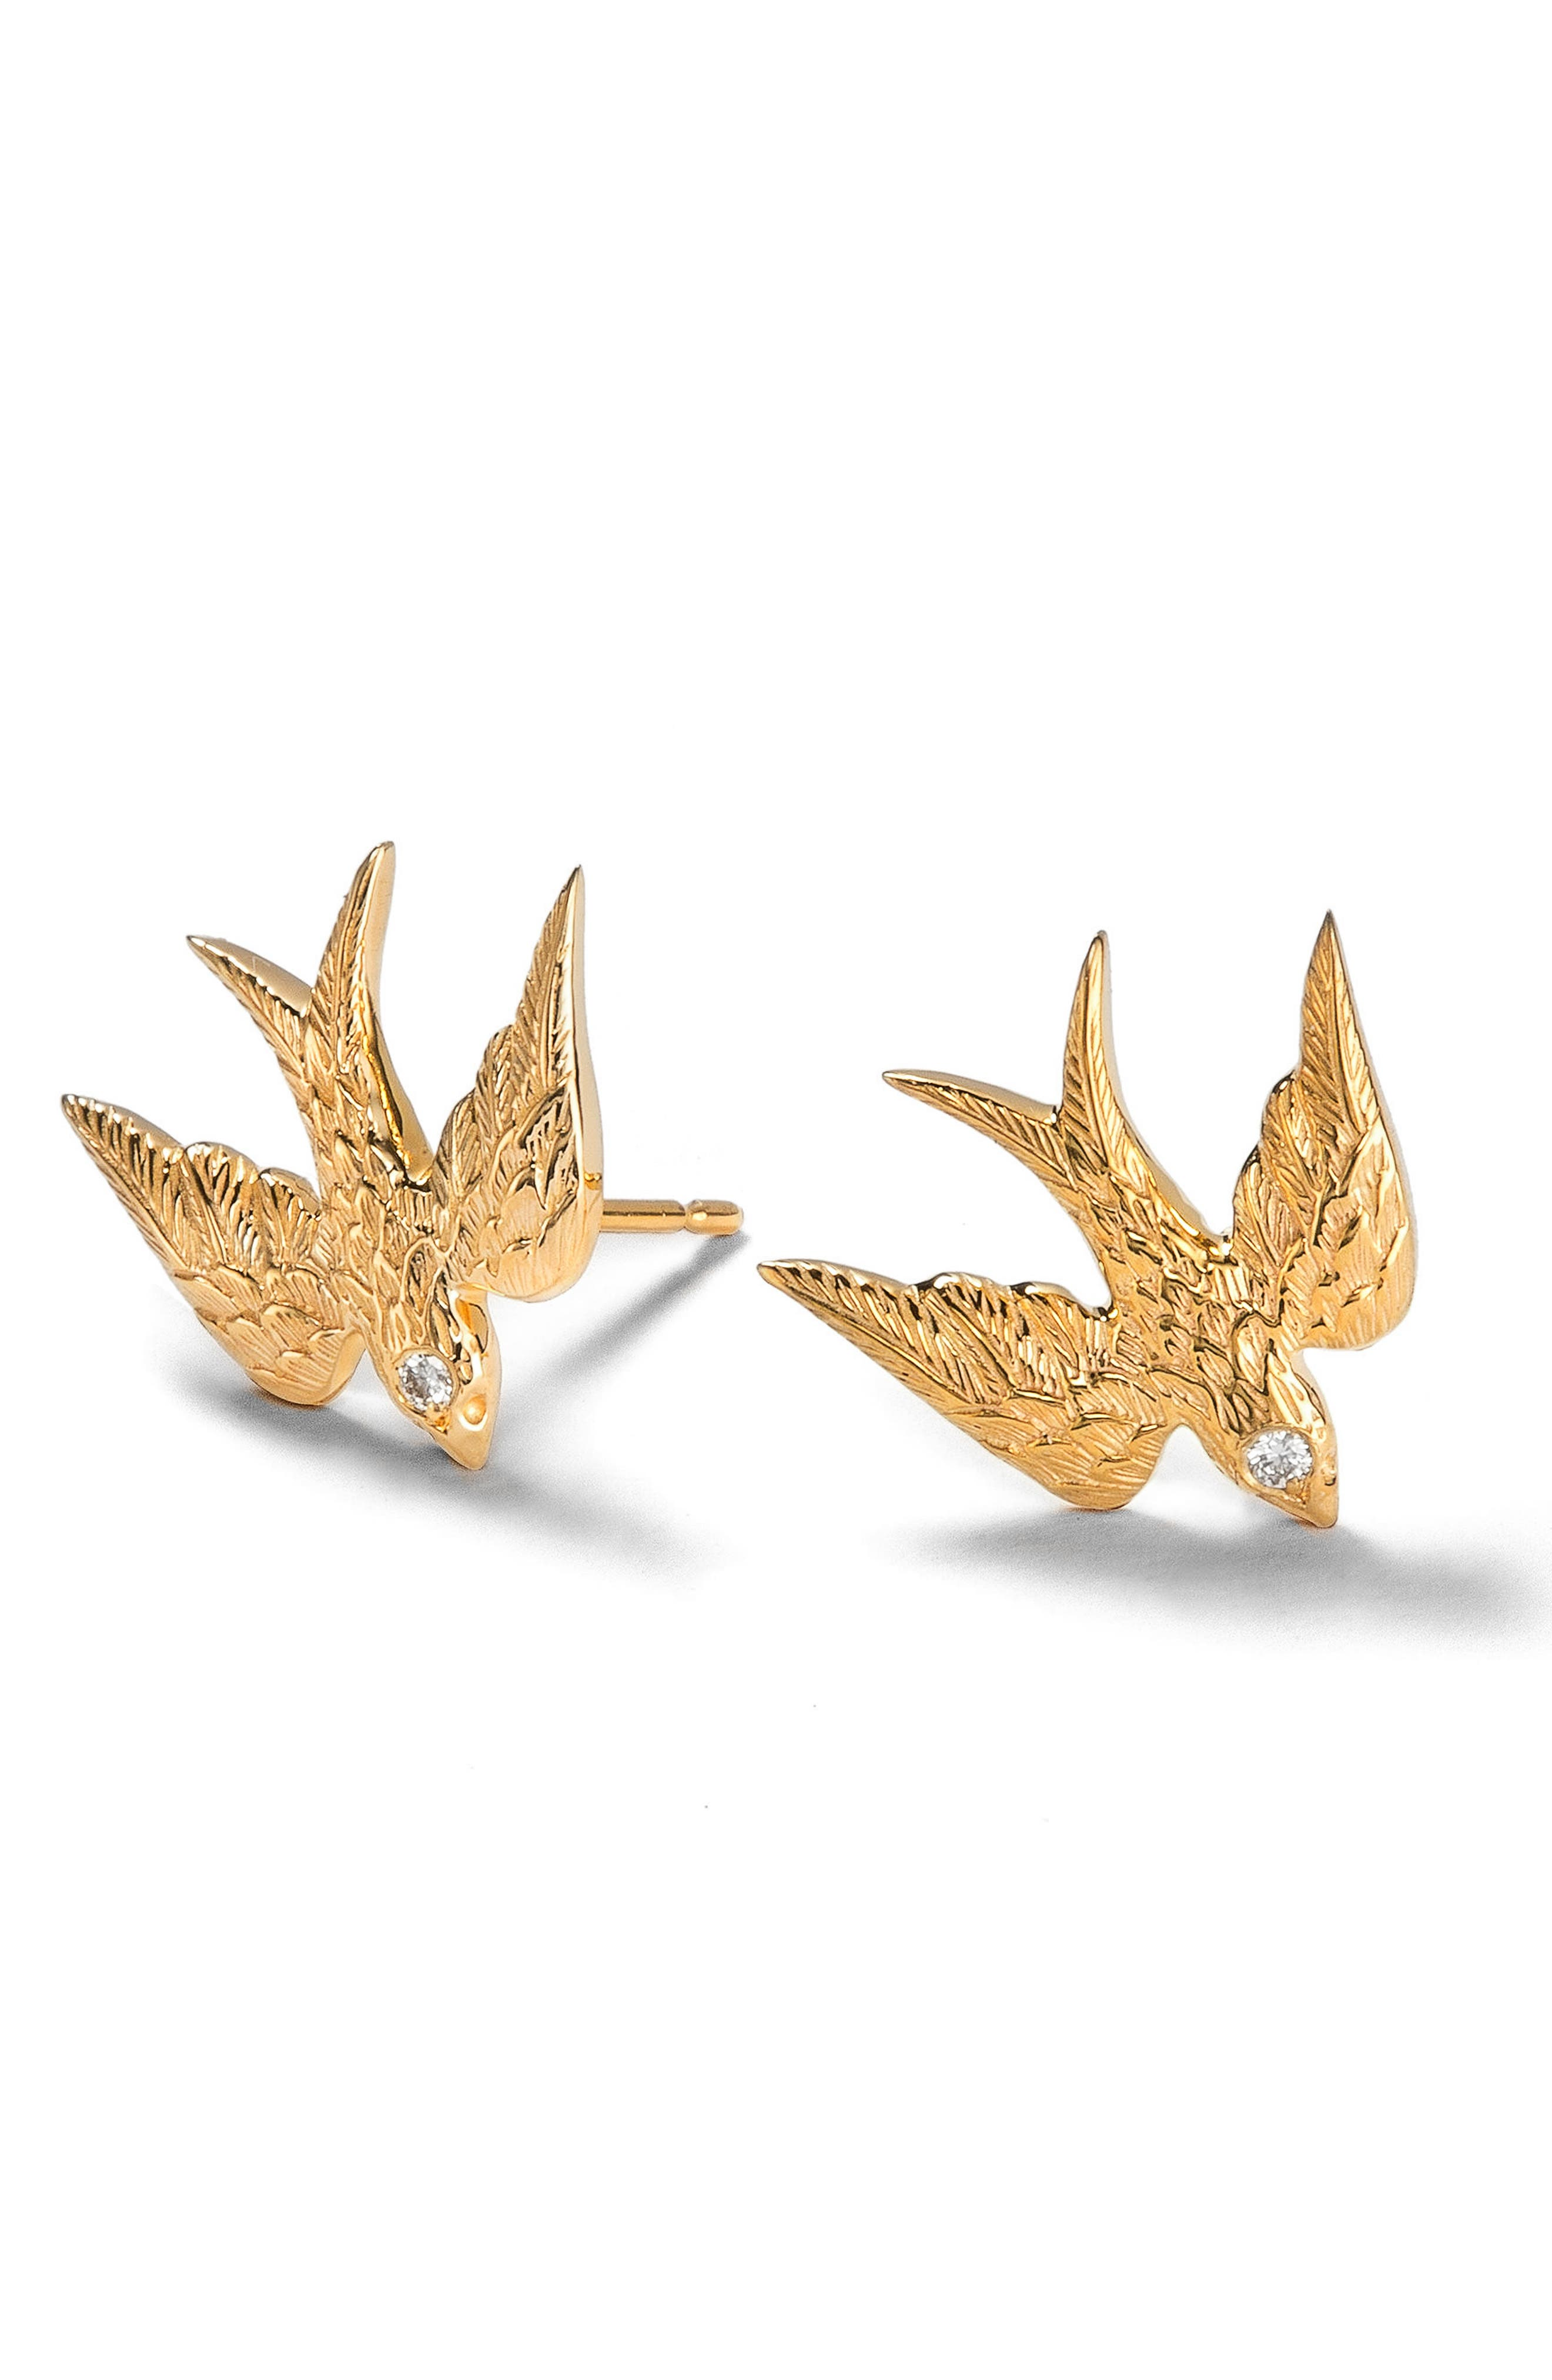 Feathered Diamond Swallow Stud Earrings,                         Main,                         color, YELLOW GOLD